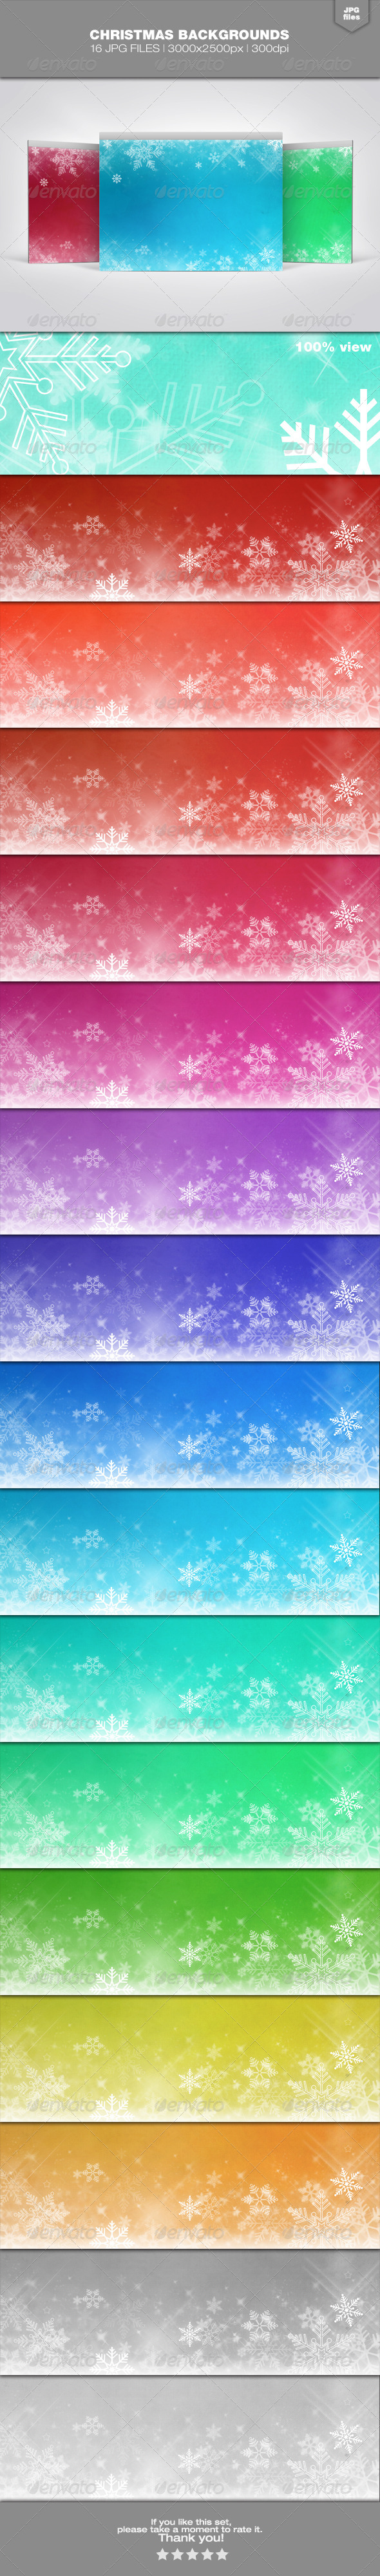 GraphicRiver Christmas Backgrounds Set 2 6339263